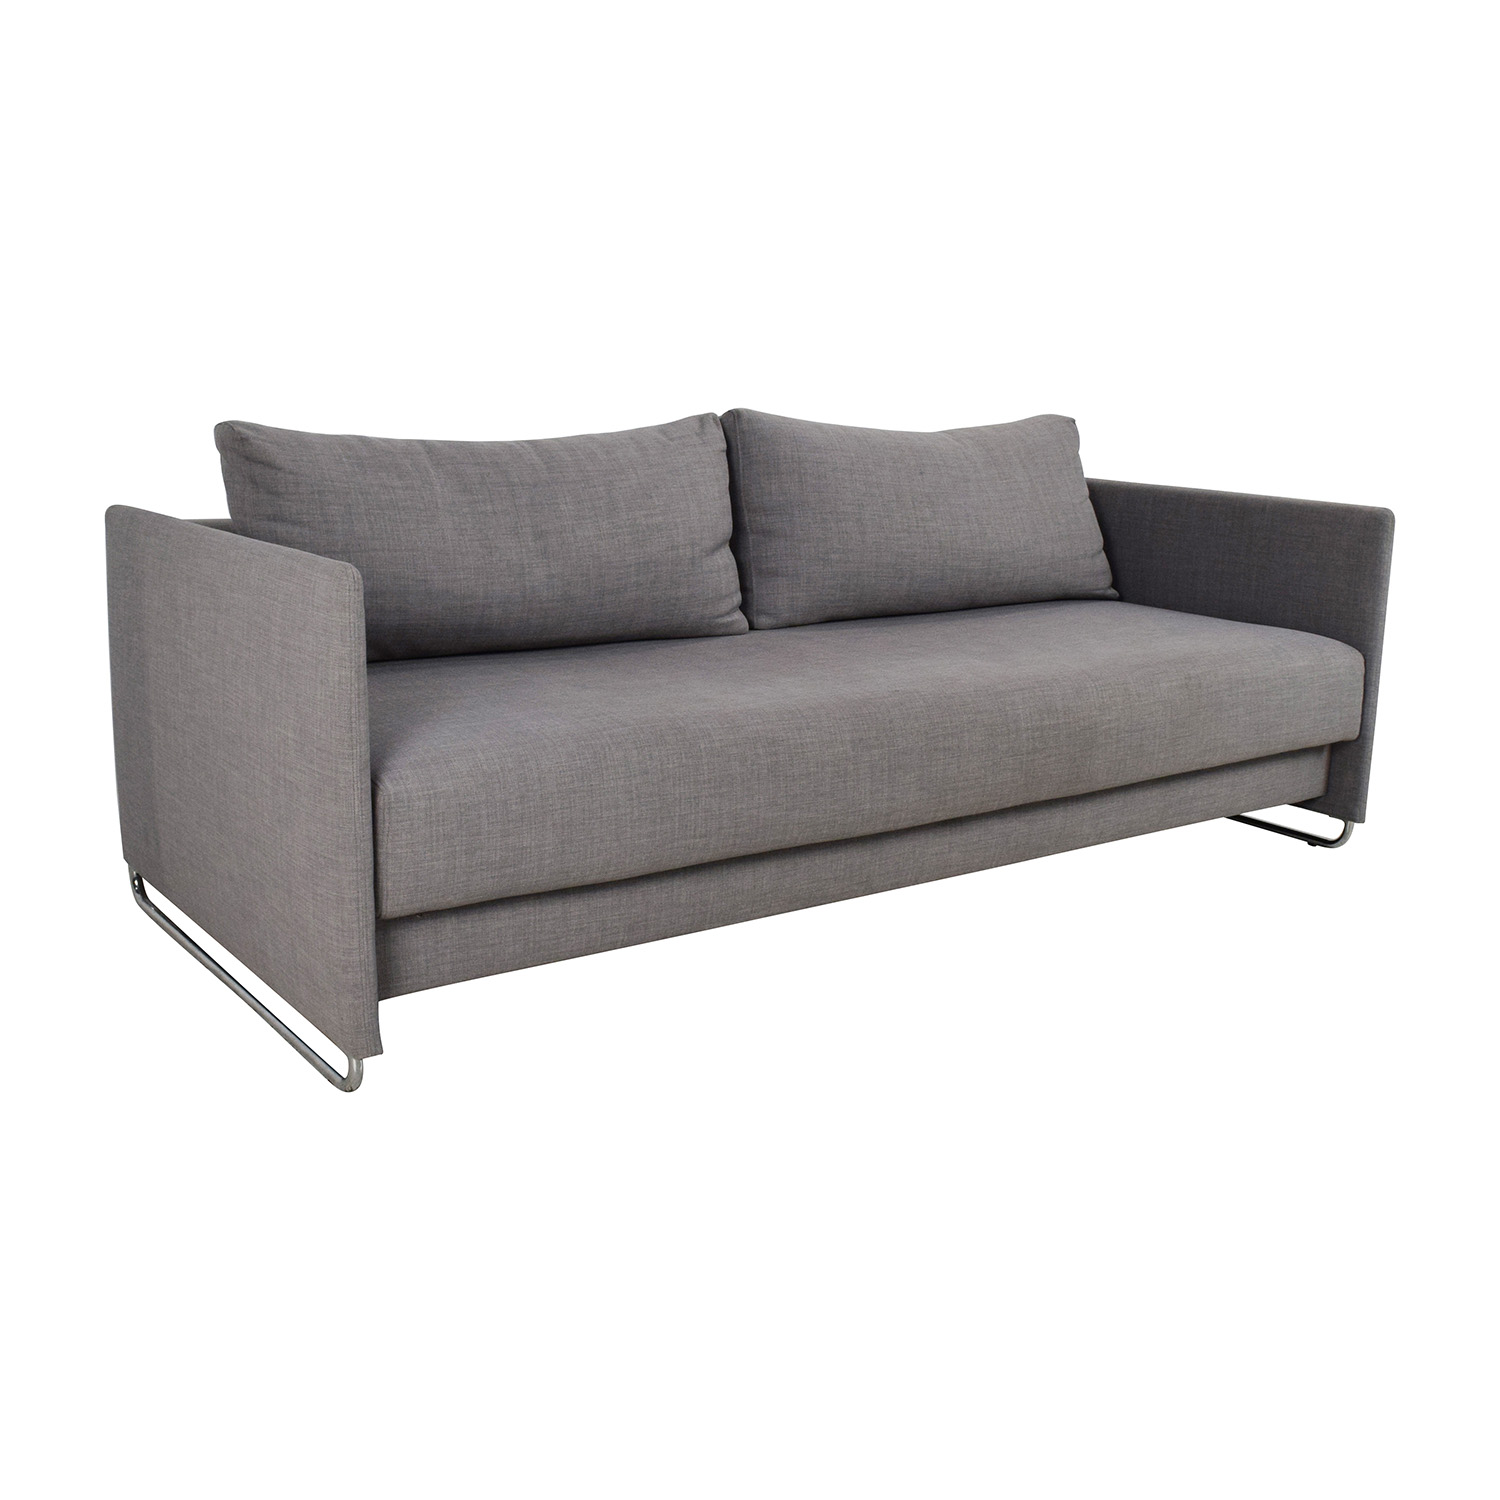 Sofa Bed Cb2 Taraba Home Review